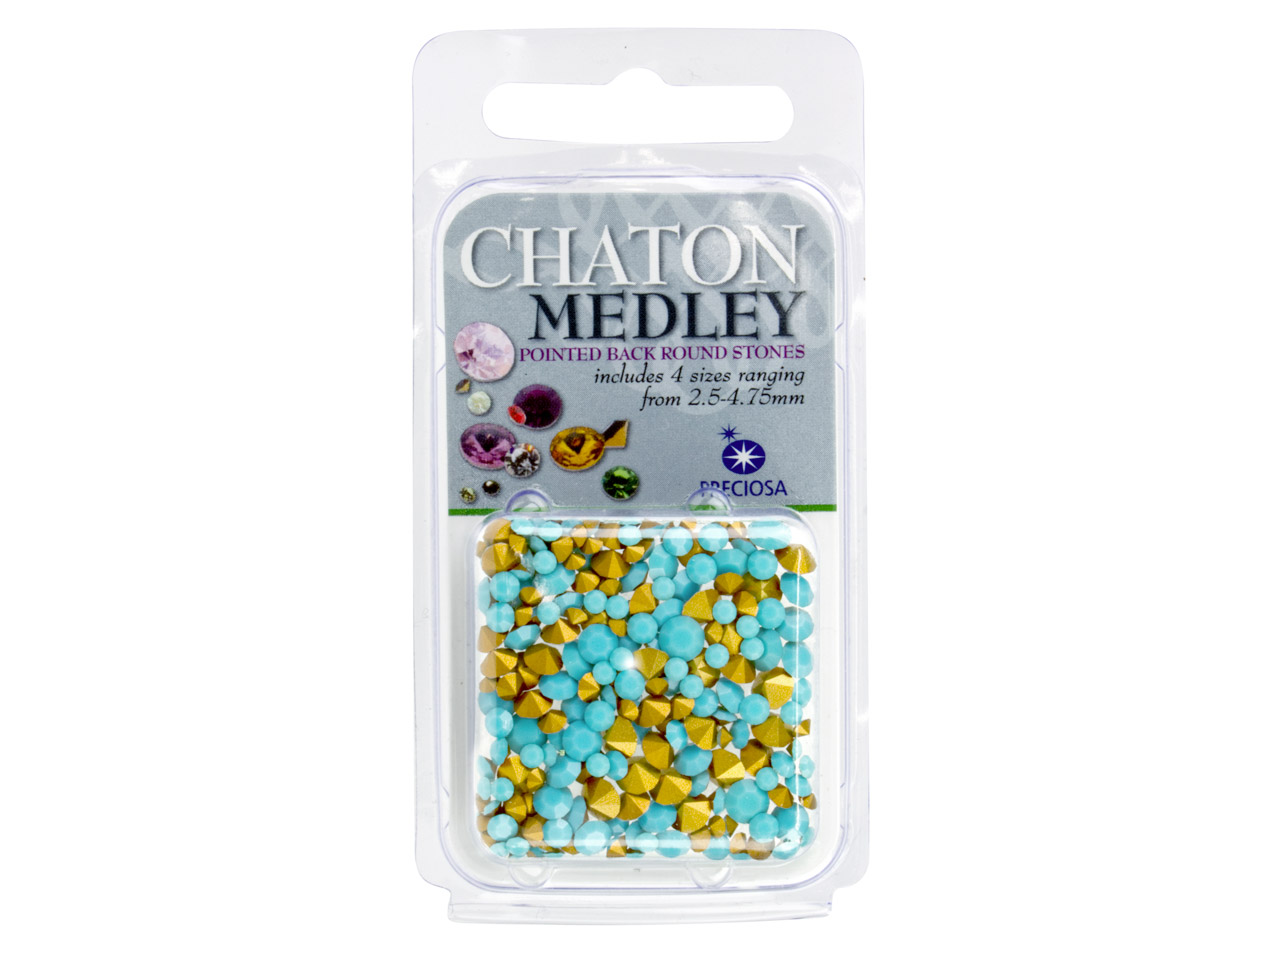 Preciosa Turquoise Coloured Mix    Chatons, 4 Sizes, 5g